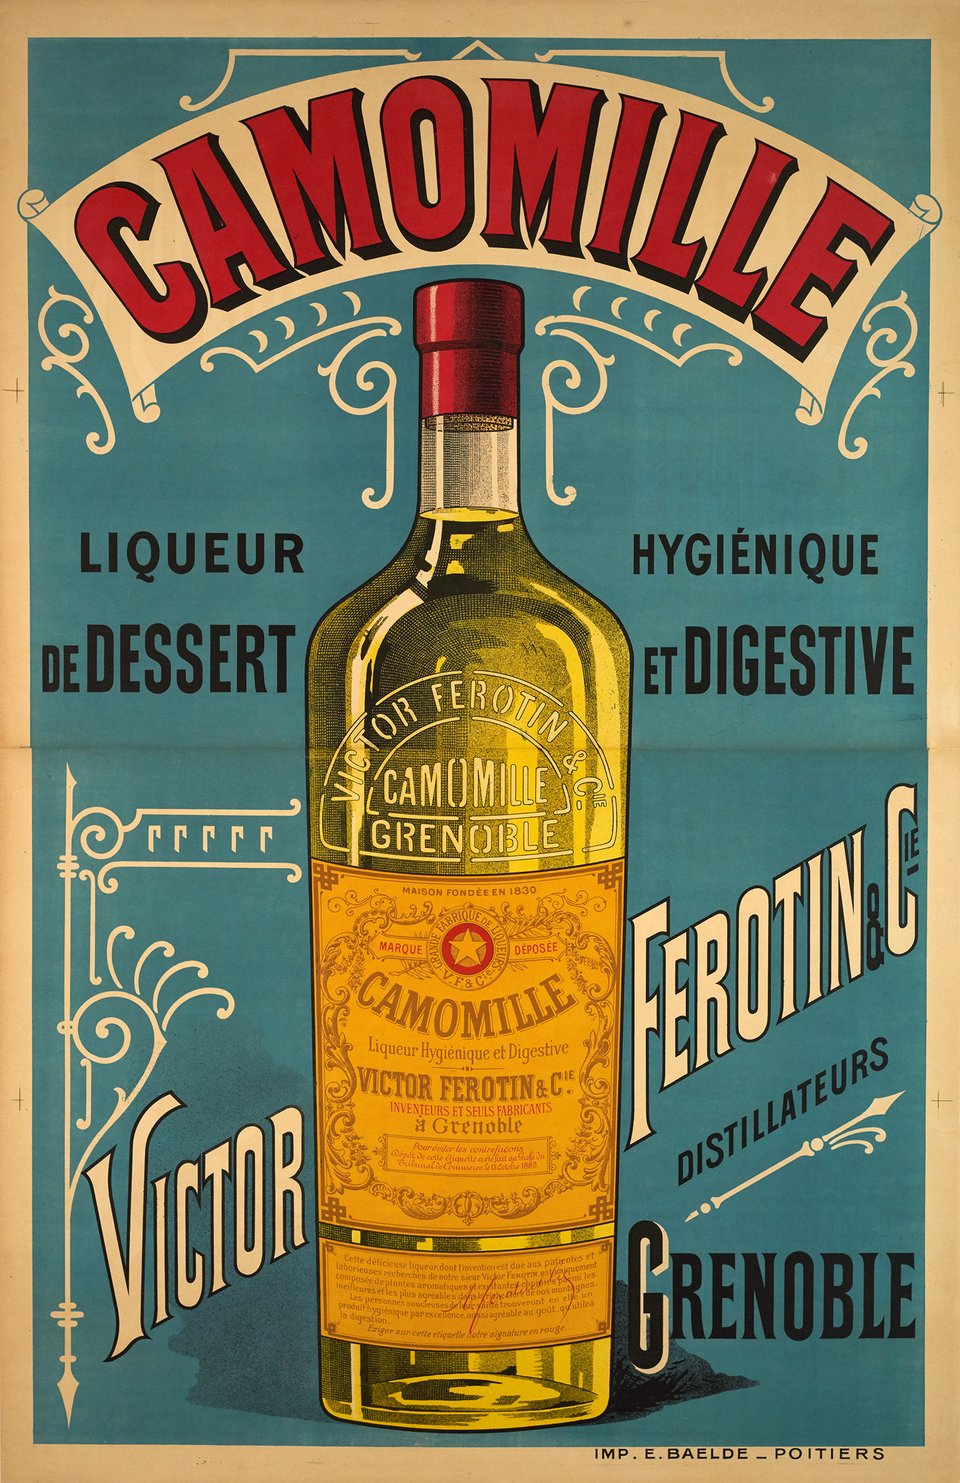 Liqueur Camomille, Victor Ferotin – Vintage poster – ANONYMOUS – 1900